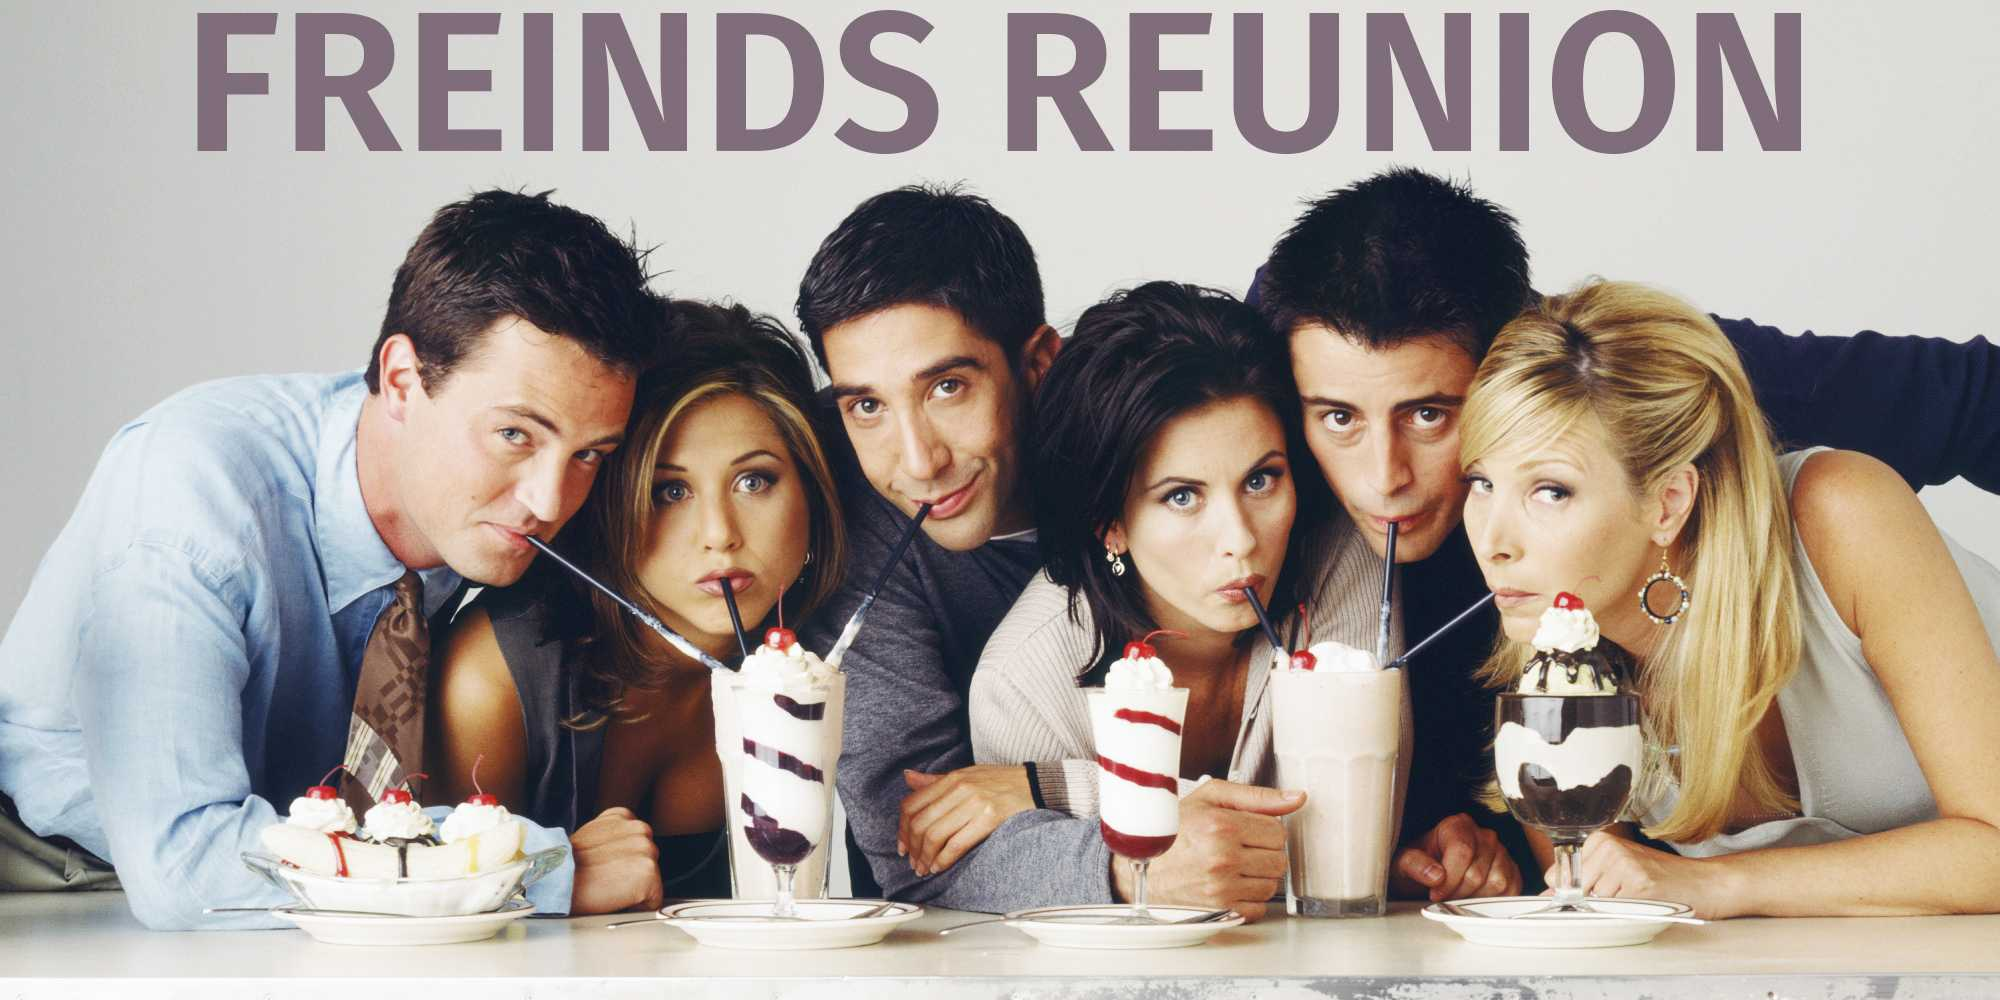 The Freinds cast get together for a reunion.